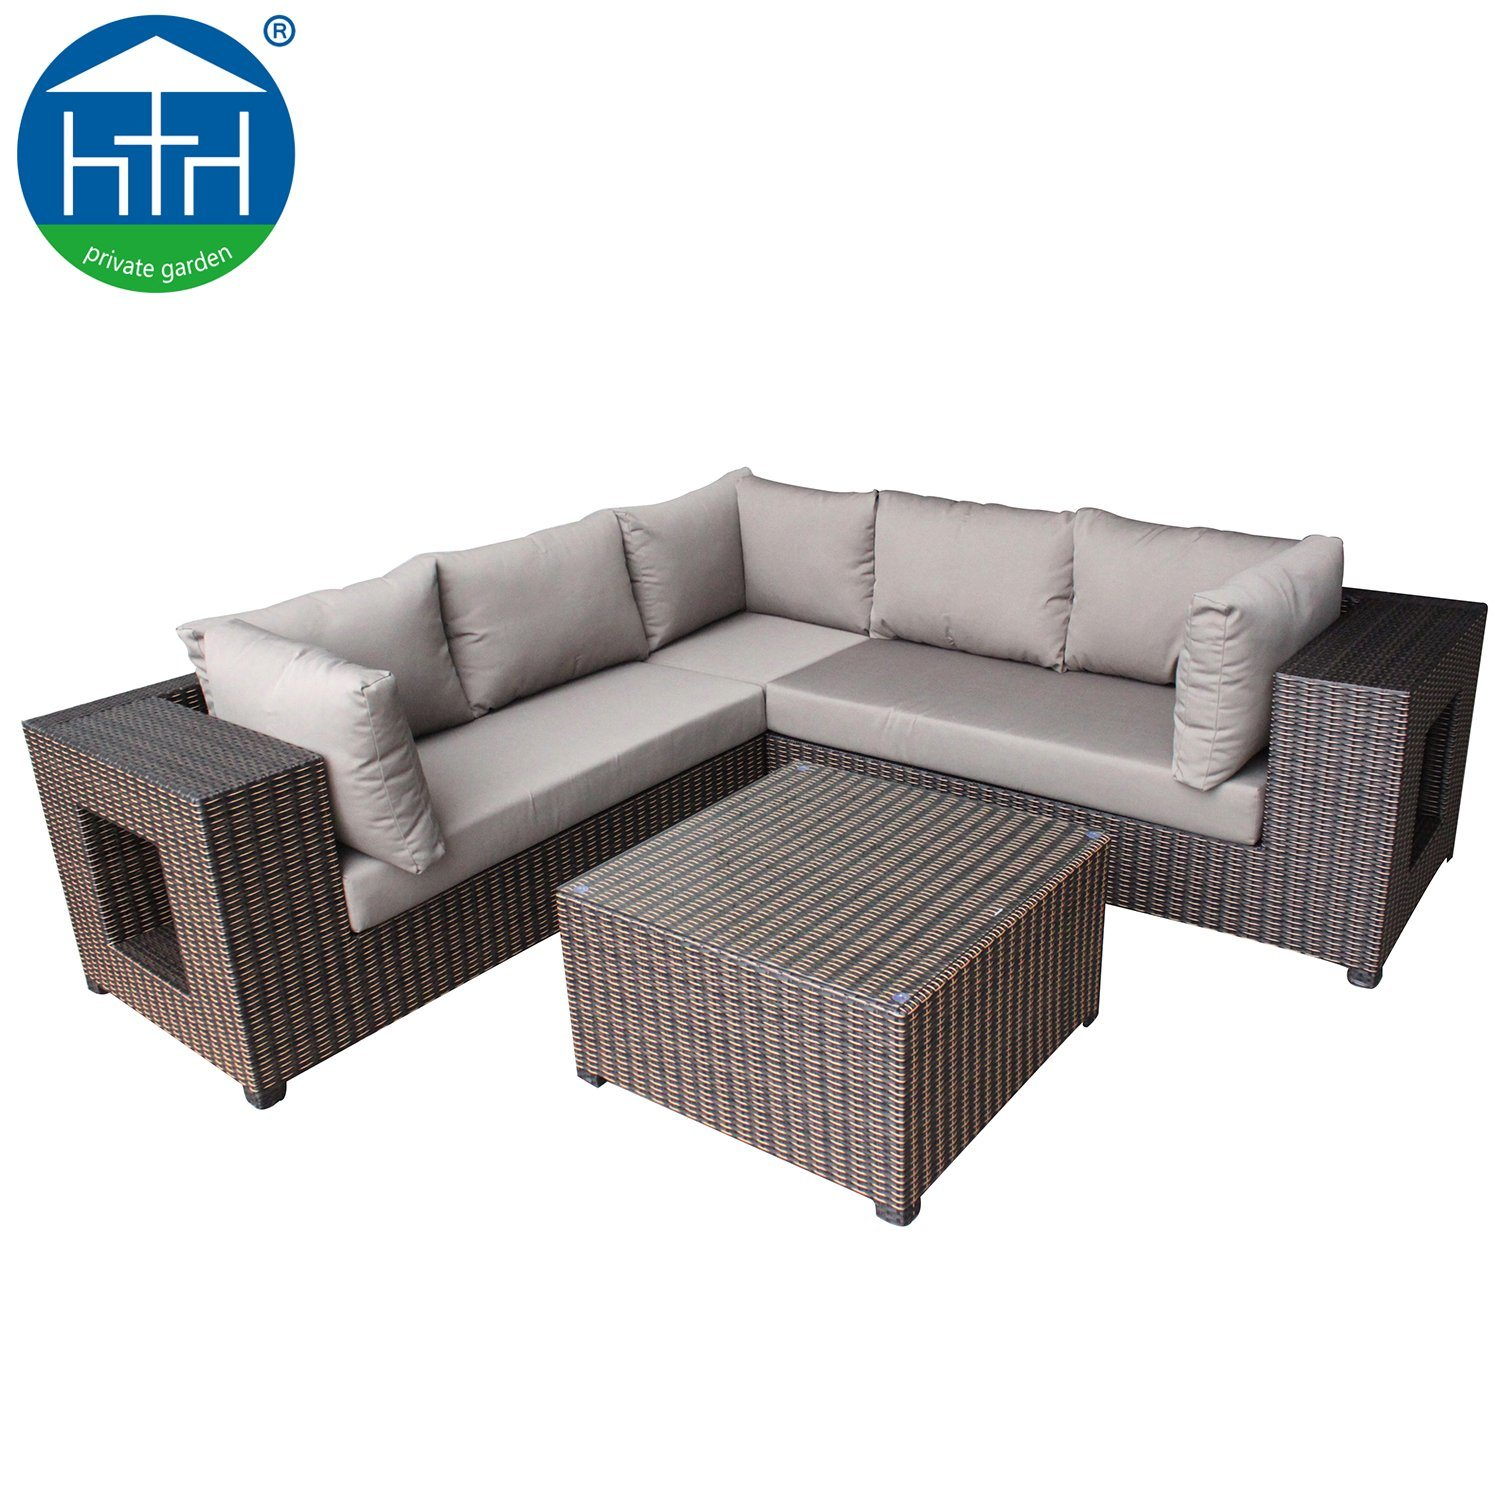 Rattan Sofa Corner Set Hot Item Outdoor Garden Patio Corner Sofa With Cushion Aluminum Rattan Furniture Set